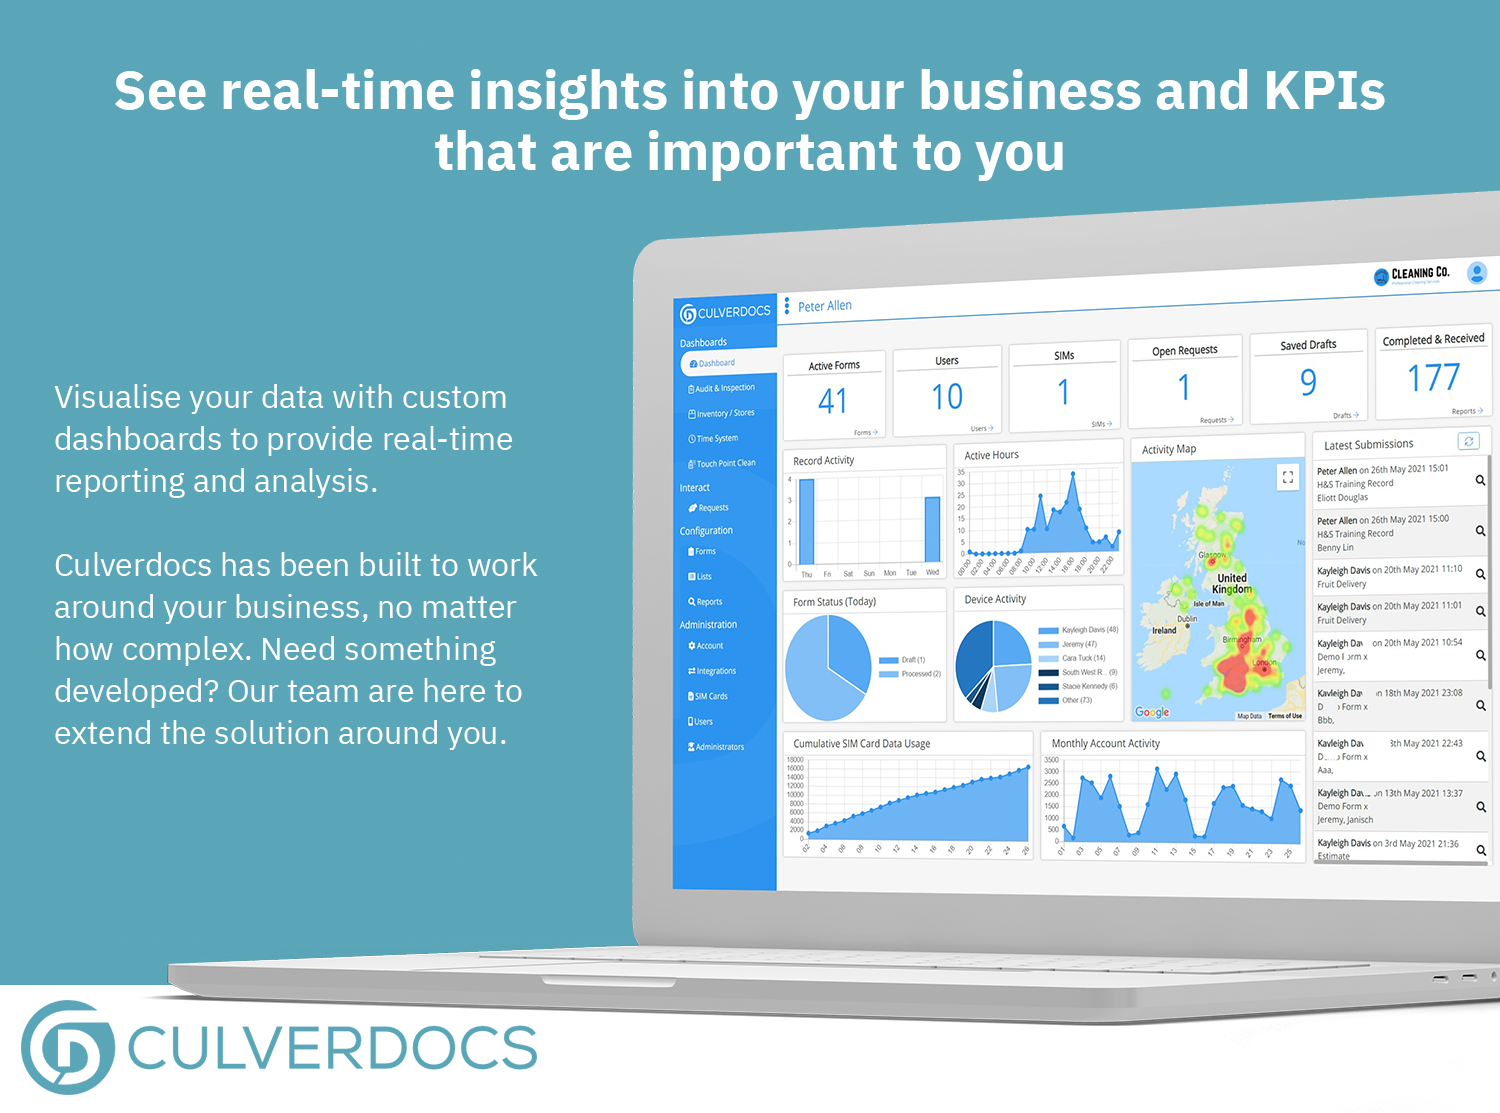 See real-time insights into your business and KPIs that are important to you